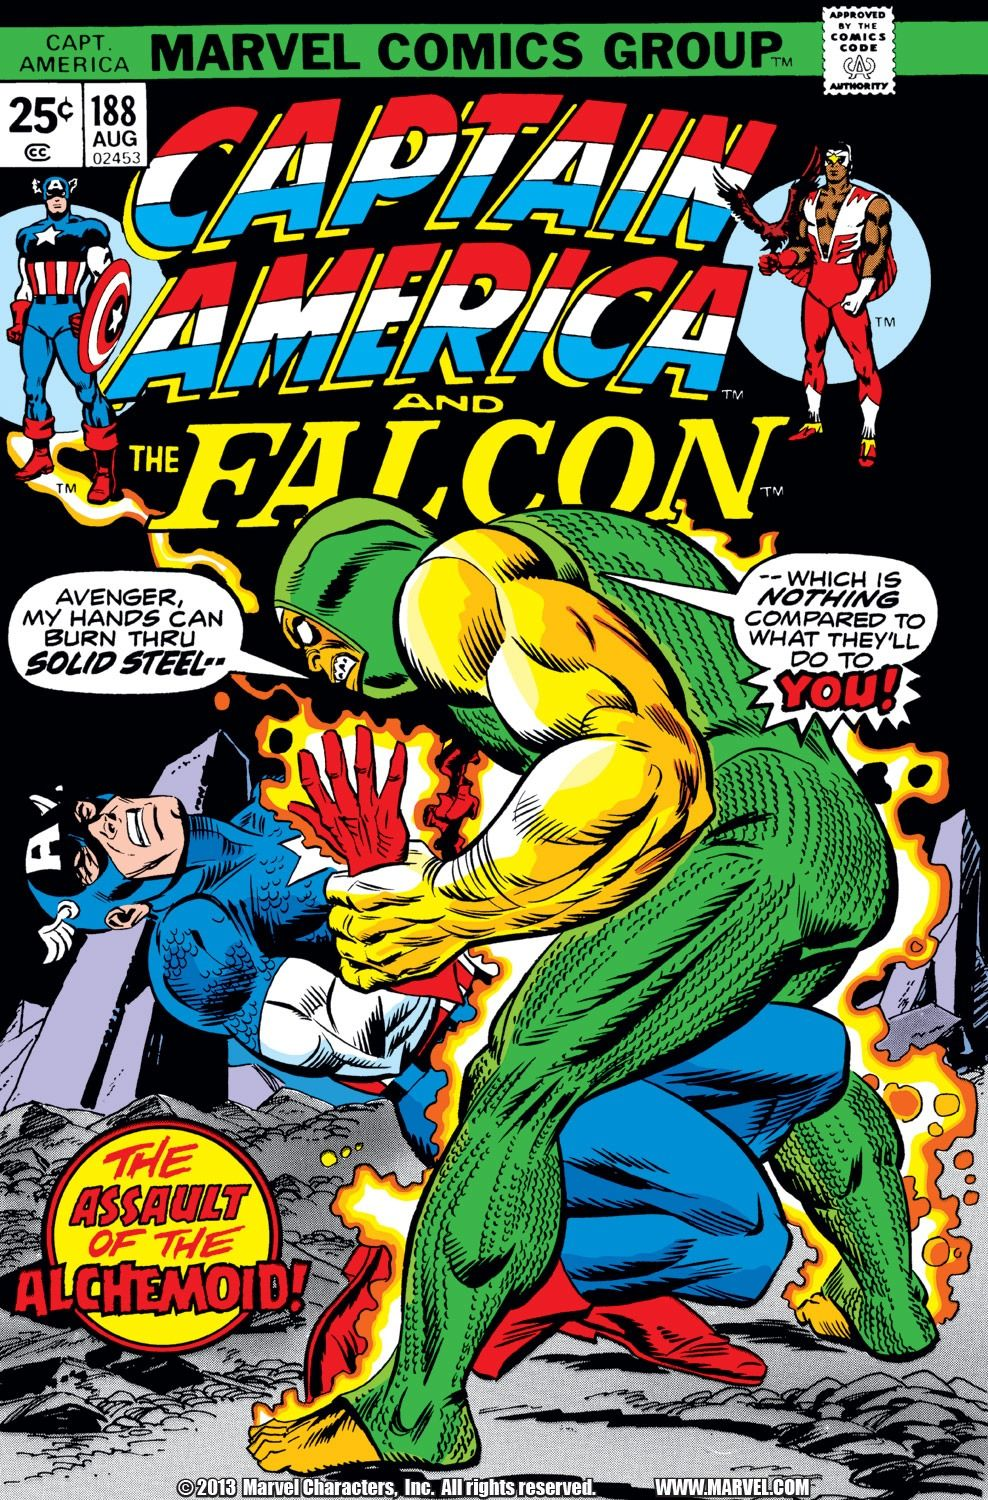 Captain America (1968) Issue #188 - Read Captain America (1968) Issue #188 comic online in high quality